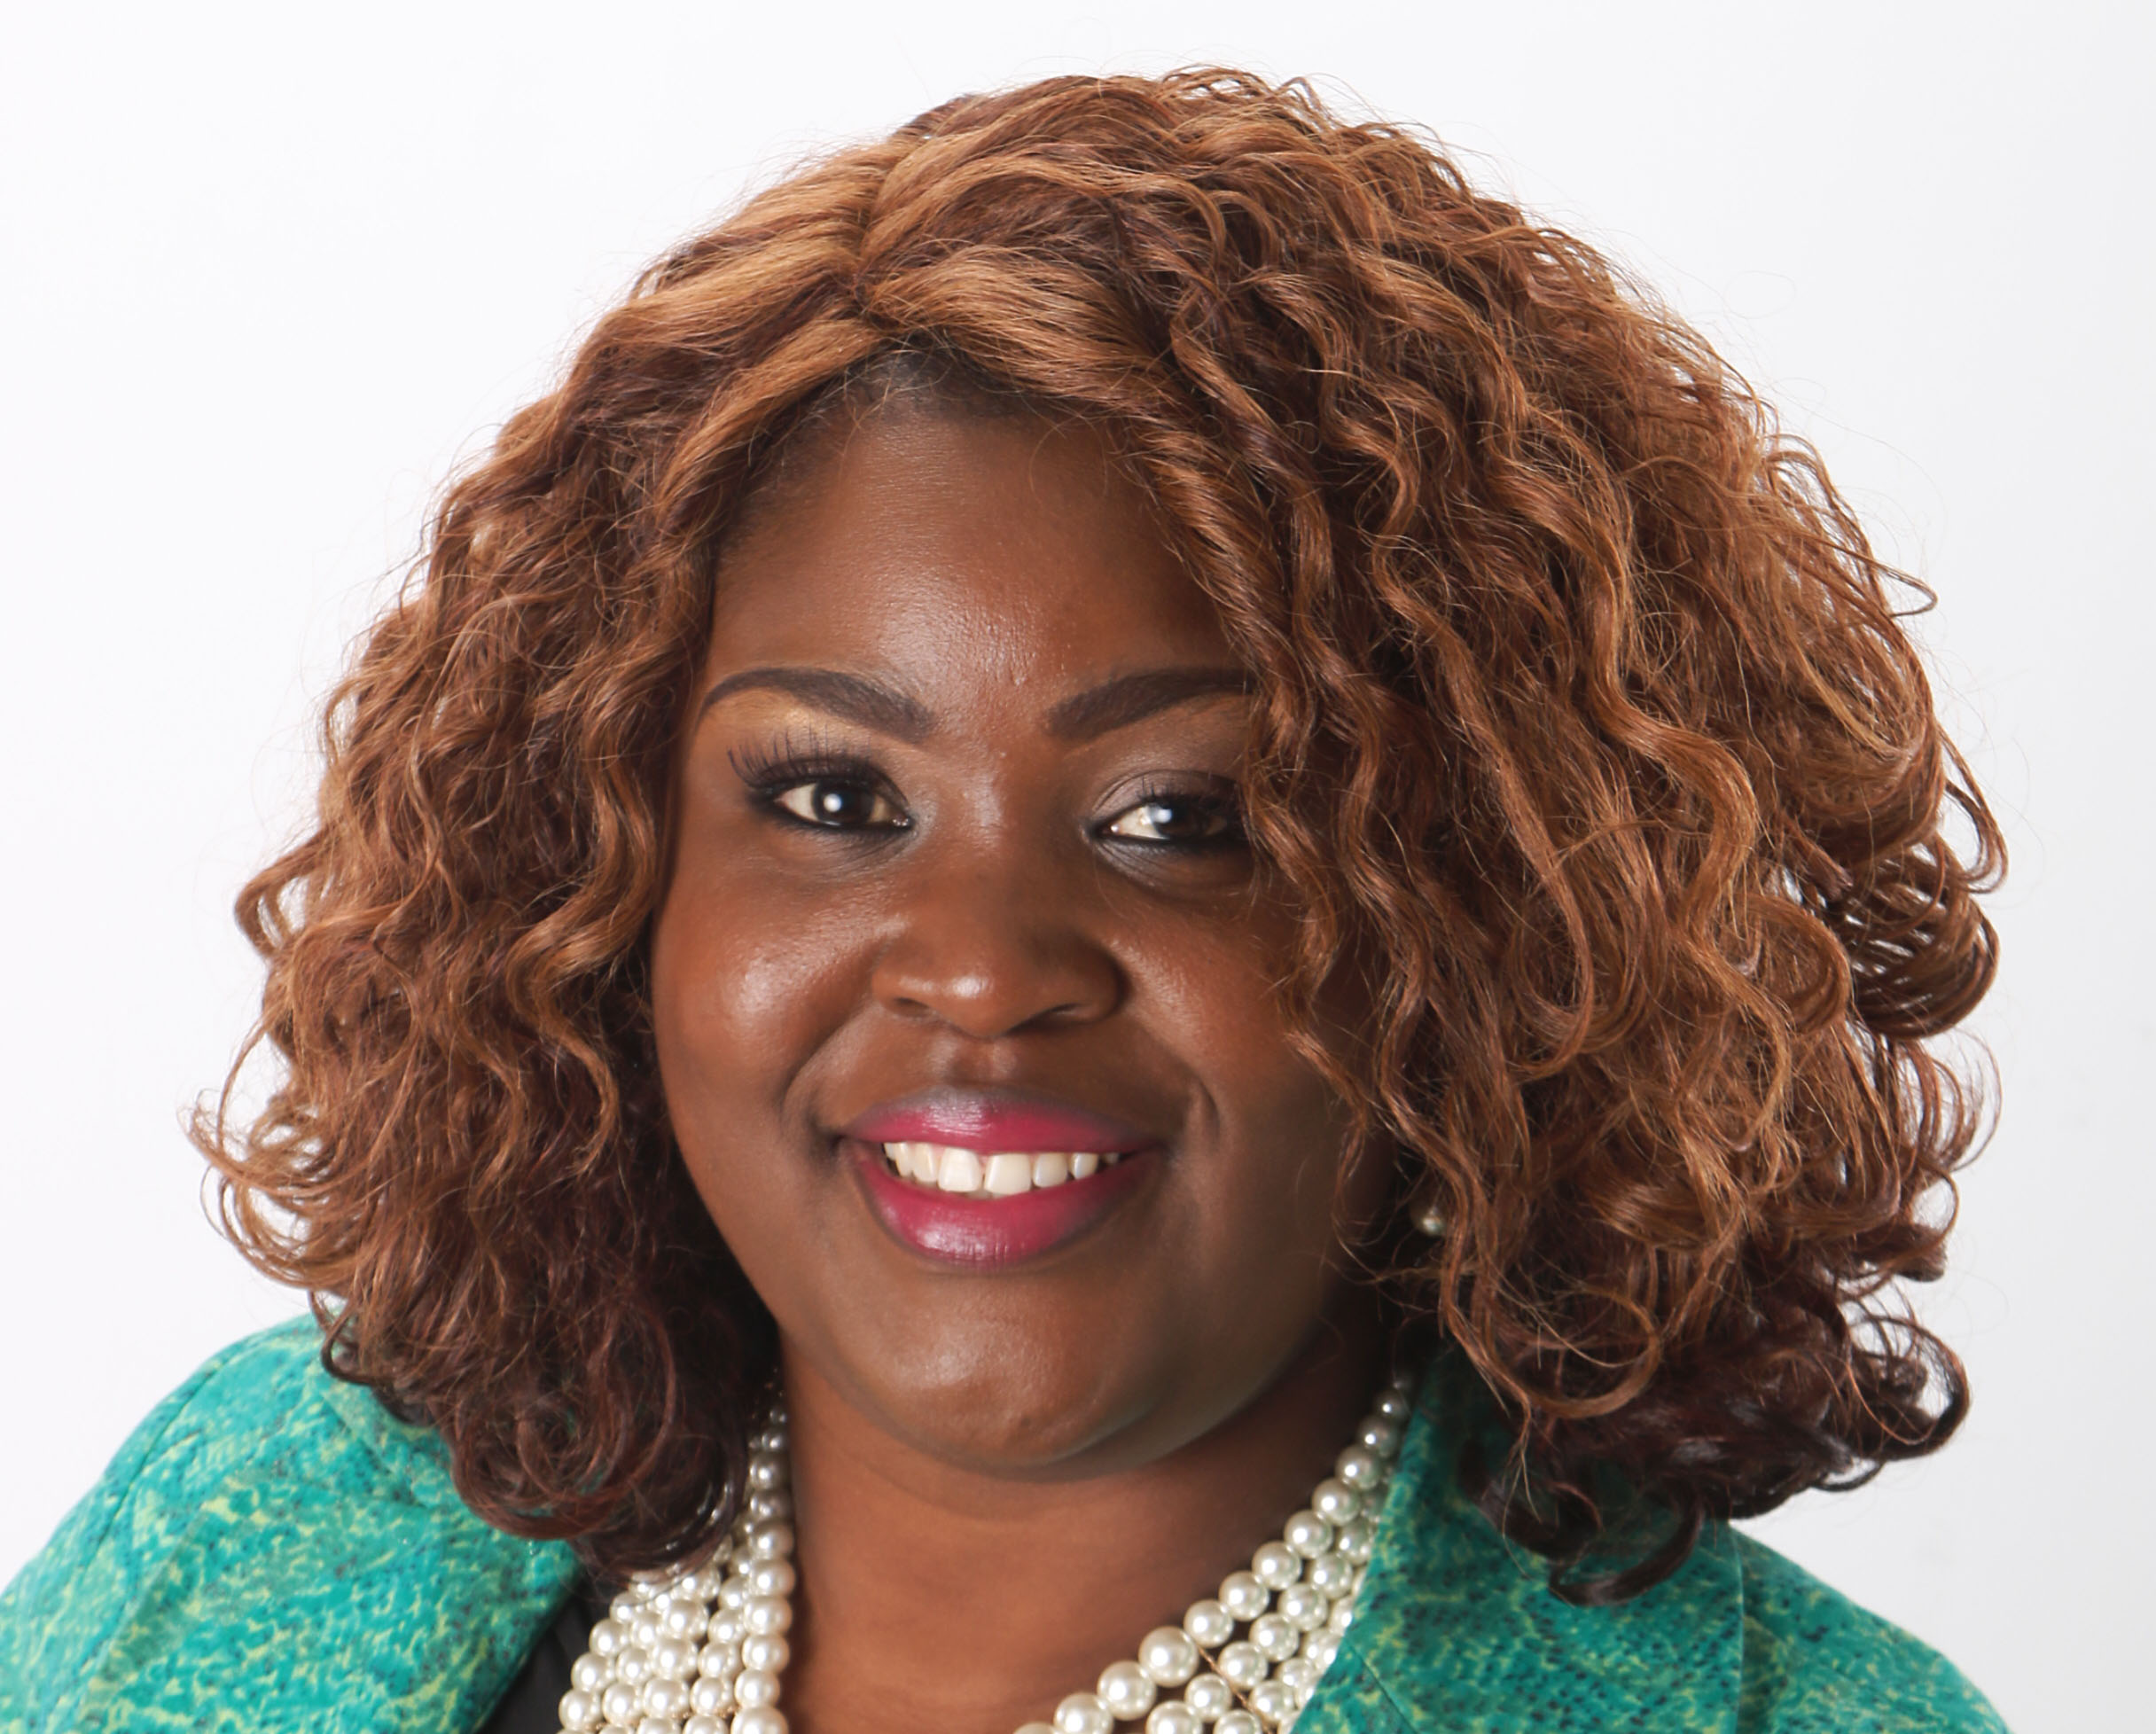 Meet Mandisha Thomas, District 4 City Council Candidate, South Fulton